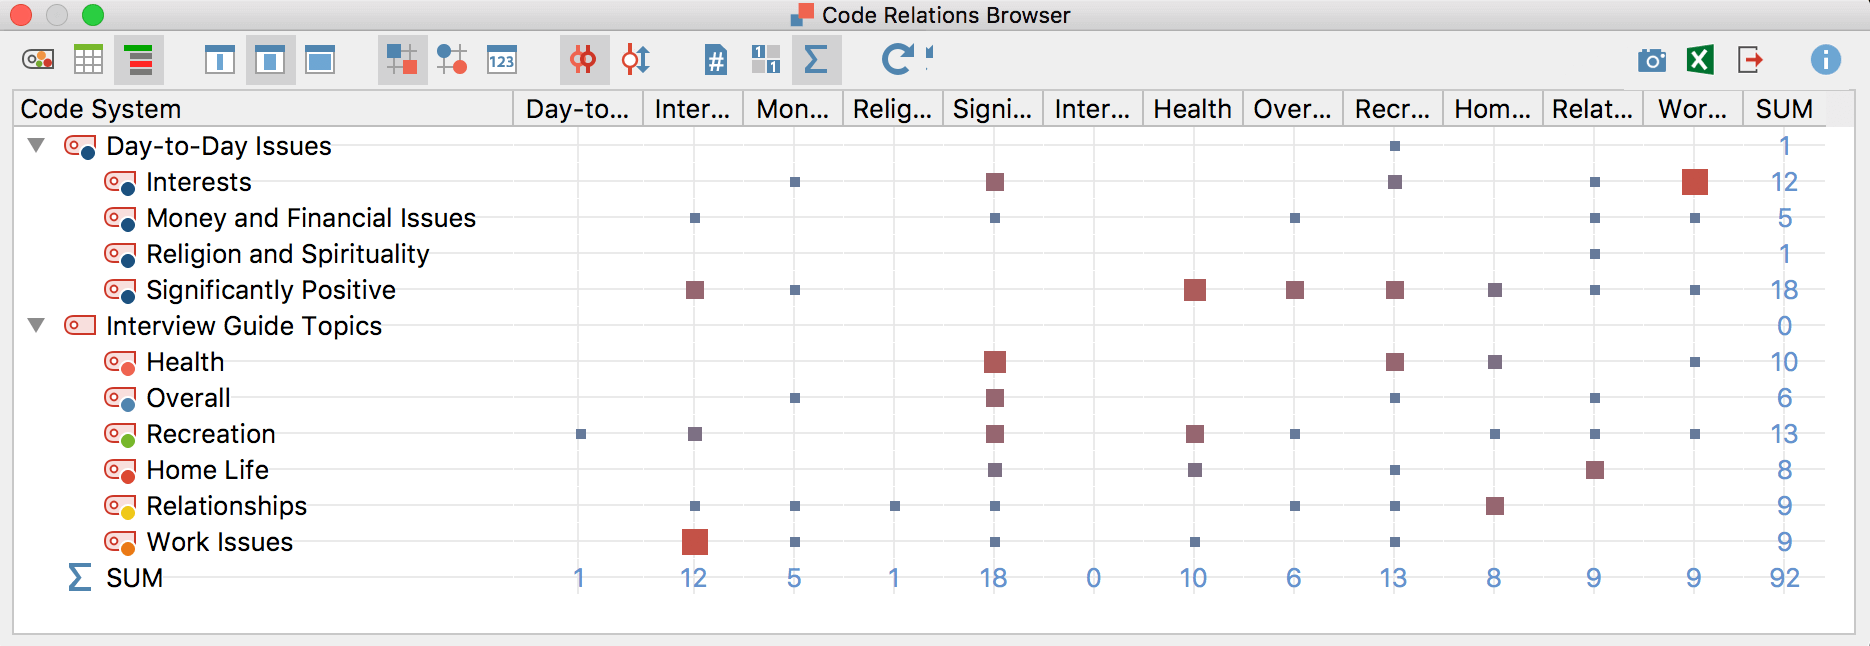 Code Relations Browser Visualize Overlapping Codes Maxqda The